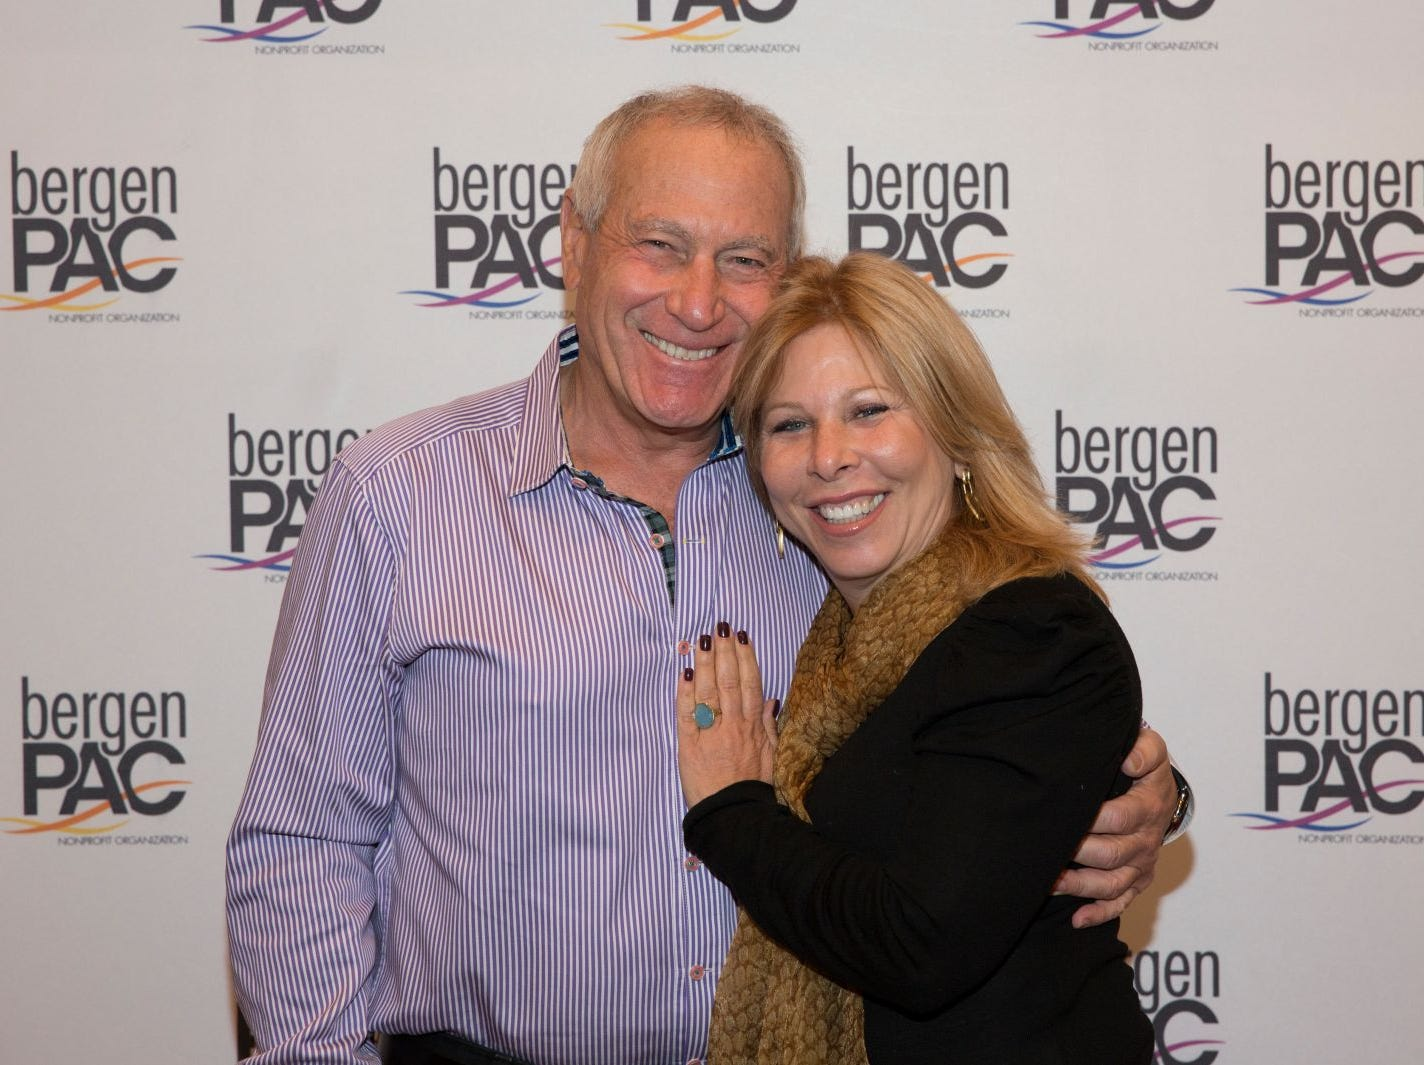 Marlene Cohan, Marc Reichman. BergenPAC held its annual fall gala featuring John Fogerty in Englewood. This year's honoree was Fernando Garip, from Wilmington Trust and M&T Bank. 11/08/2018